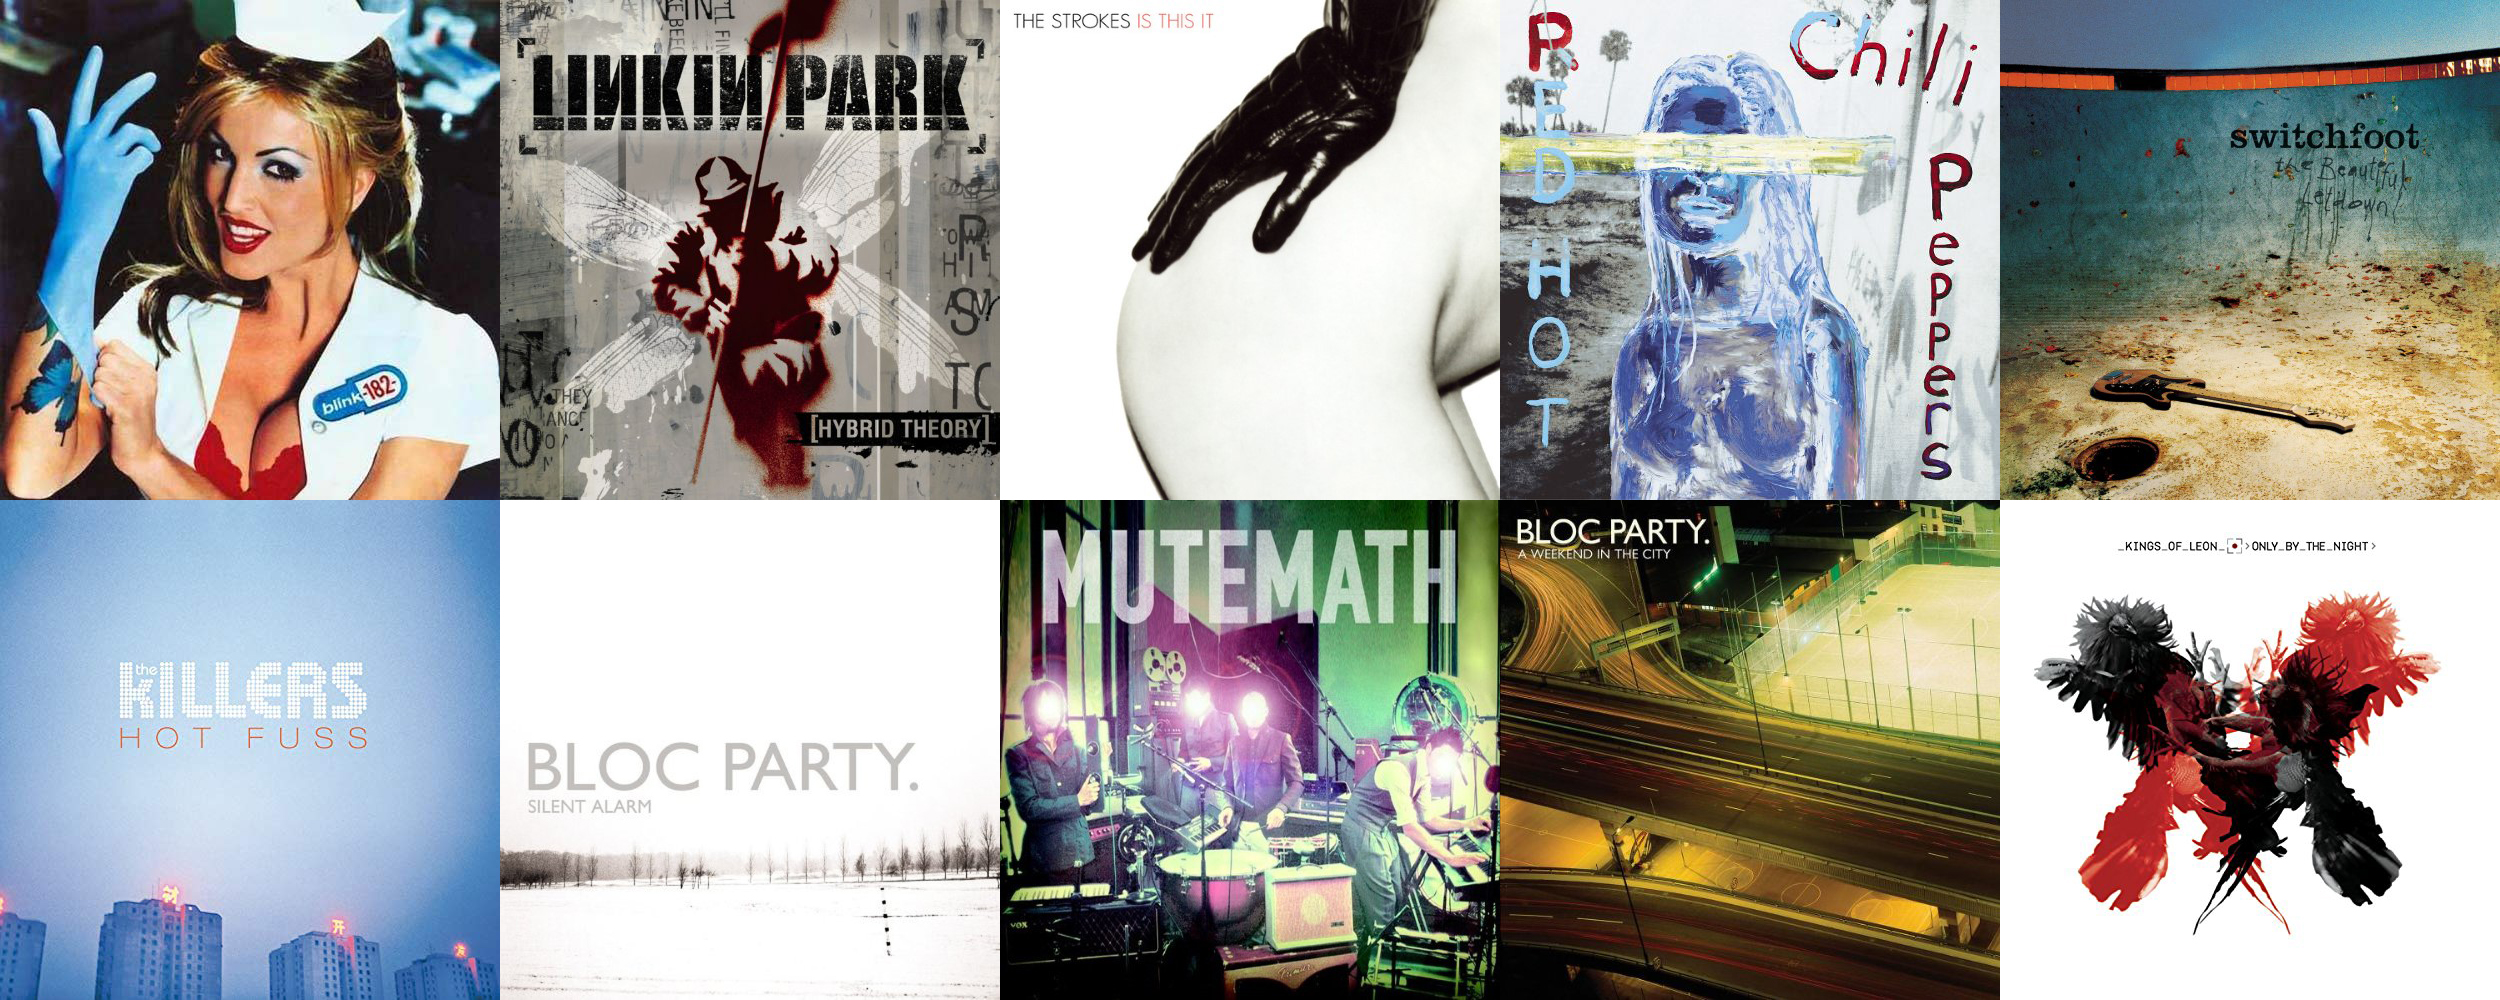 30 Years, 30 Albums - Collage 2.jpg